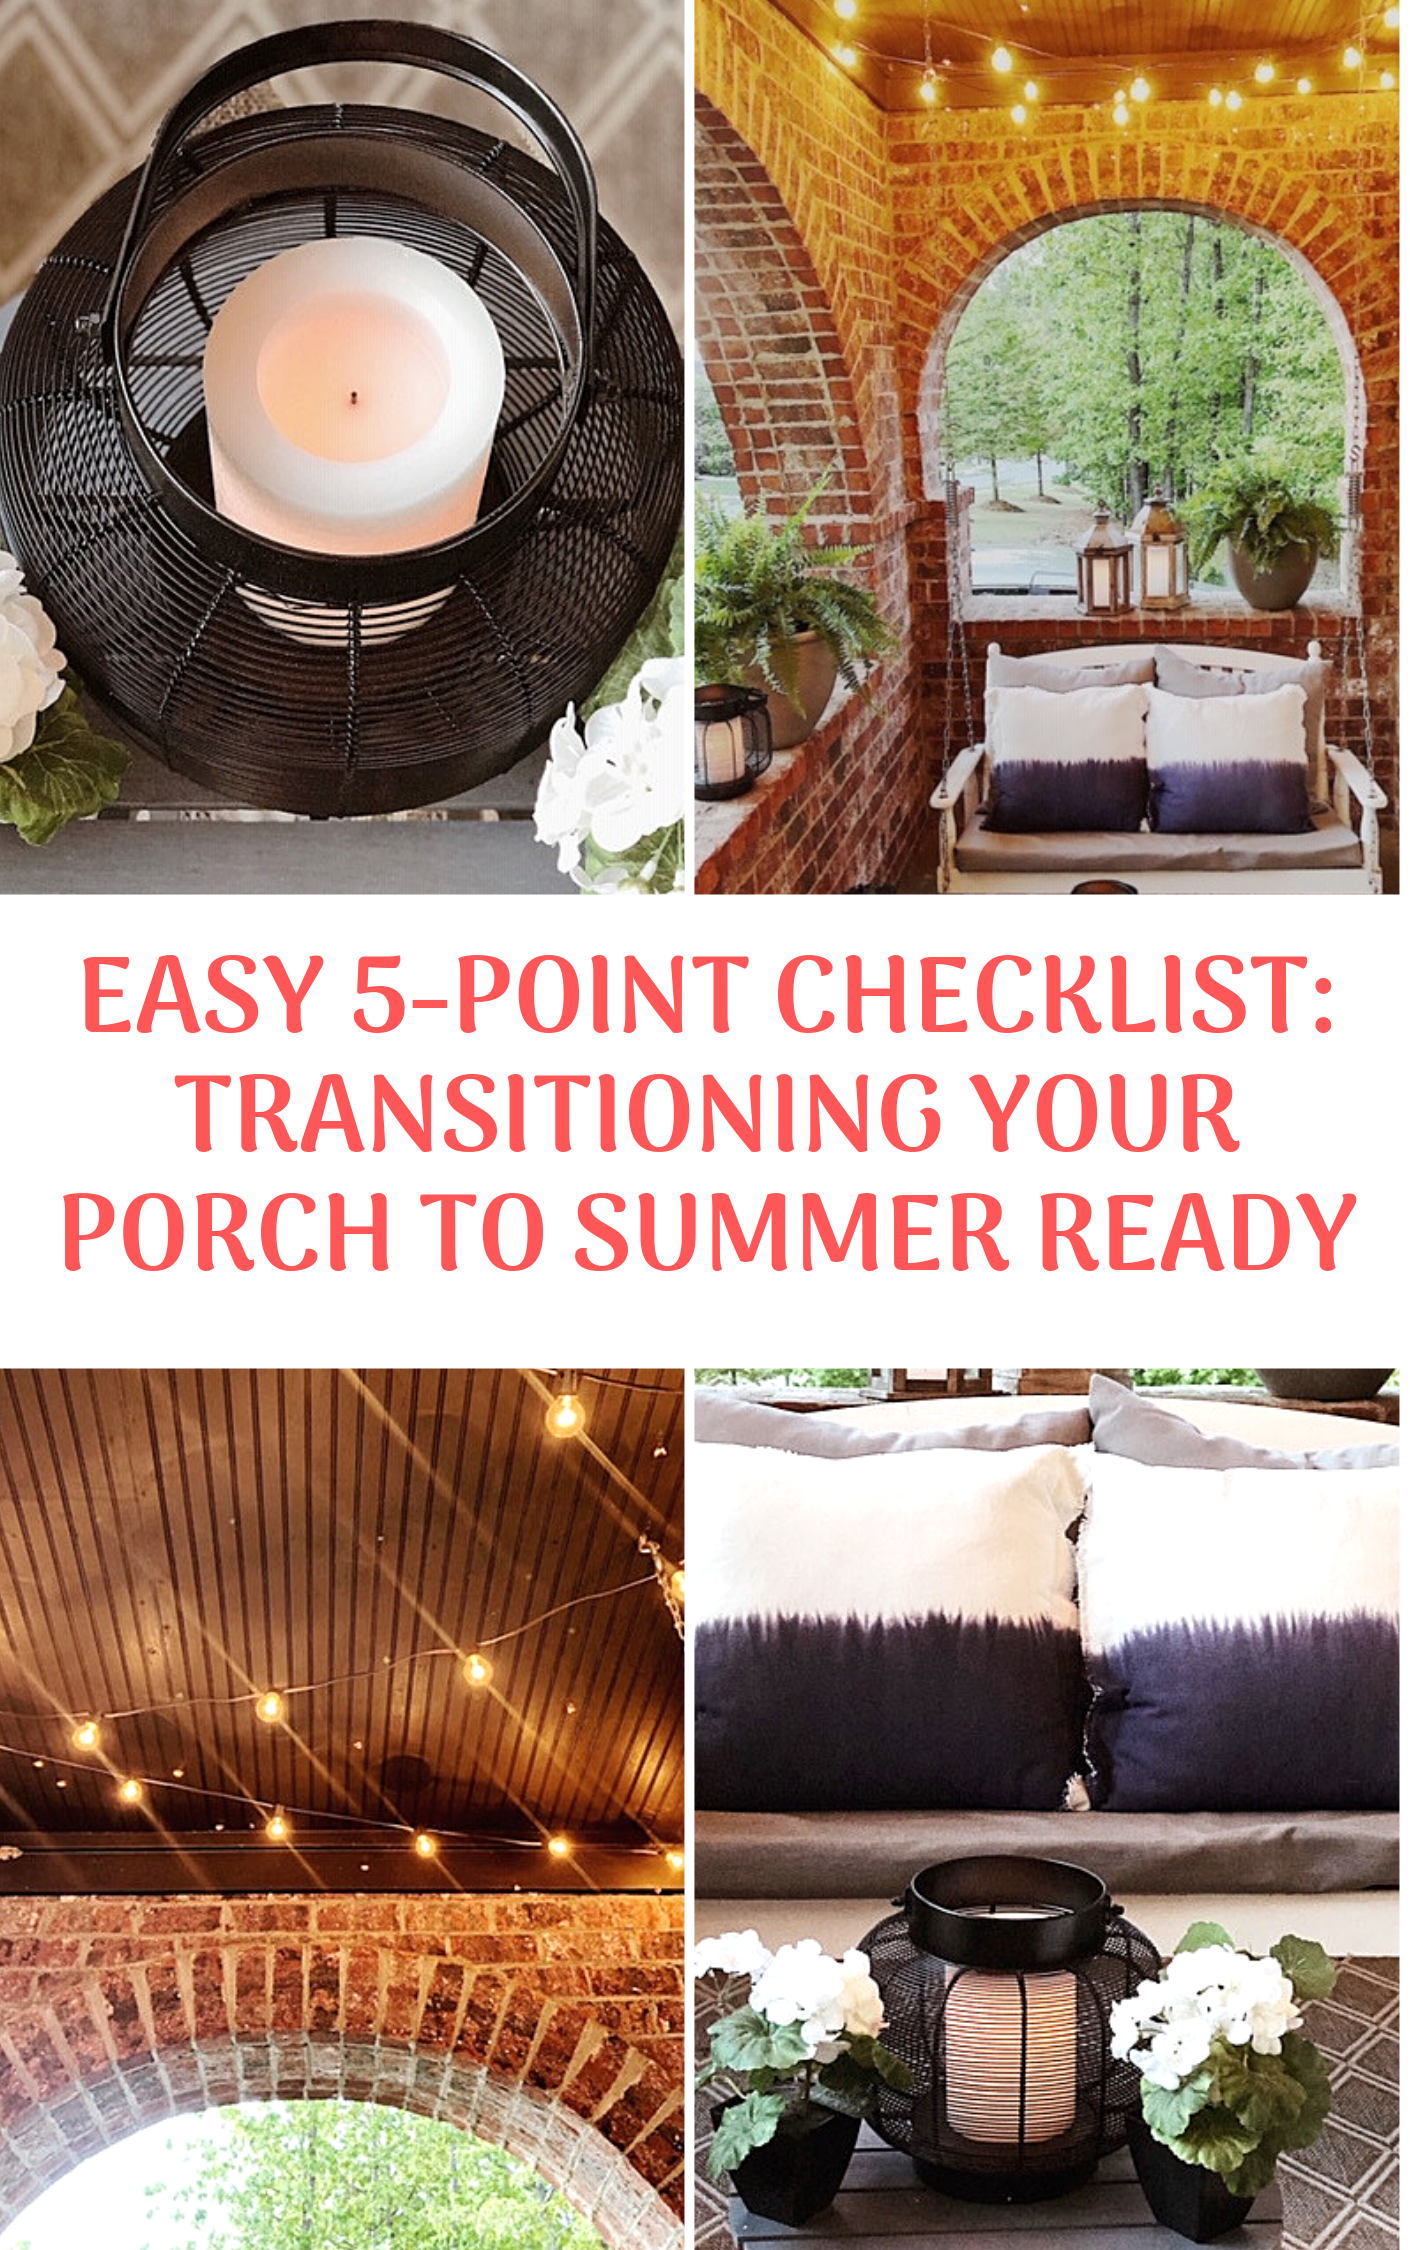 Easy 5-Point Checklist: Transitioning Your Porch To Summer Ready.png